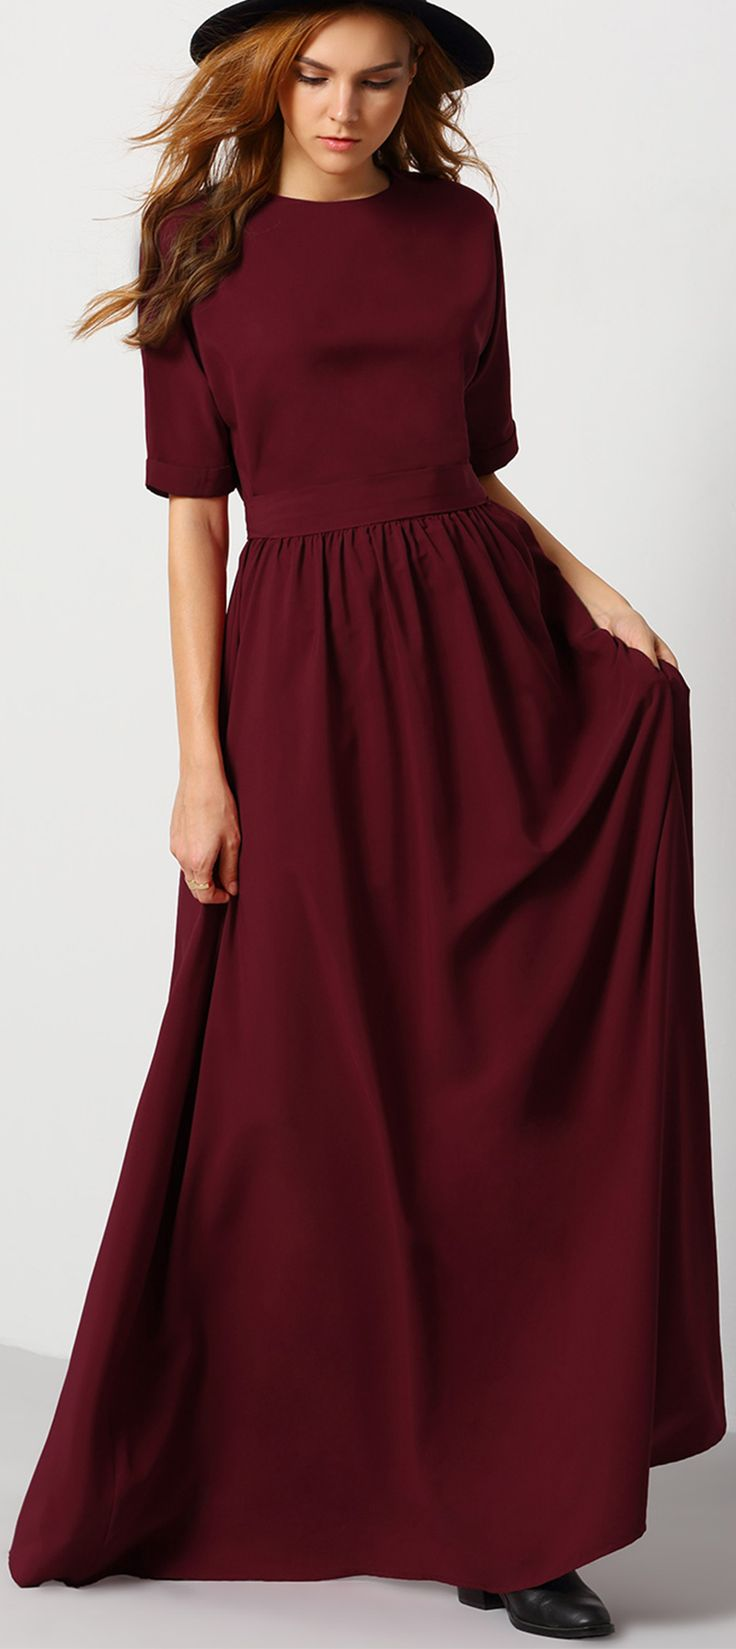 Occasion & Party Dresses -  Burgundy Round Neck Maxi Dress- SheIn.com